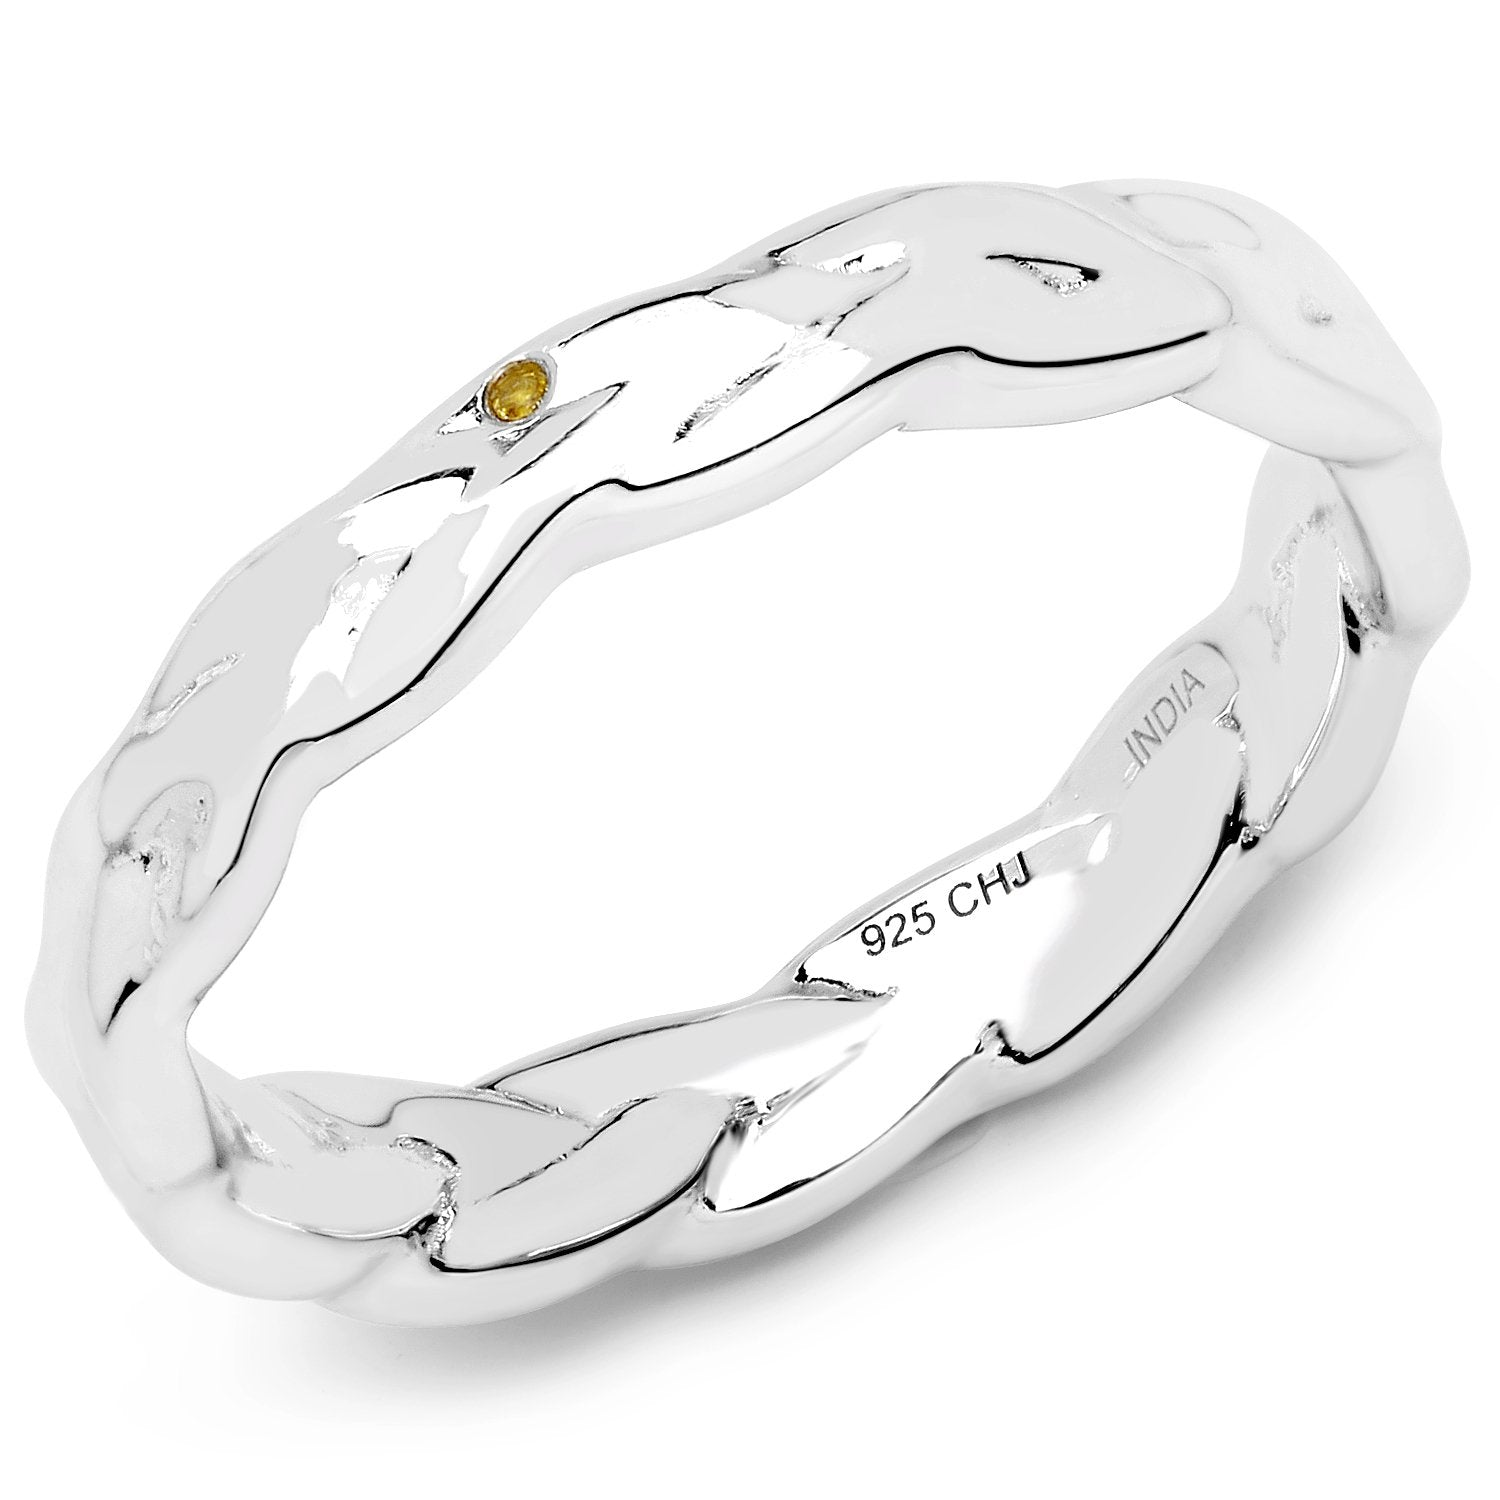 LoveHuang 0.02 Carats Genuine Yellow Diamond (I-J, I2-I3) Twisted Ring Solid .925 Sterling Silver With Rhodium Plating